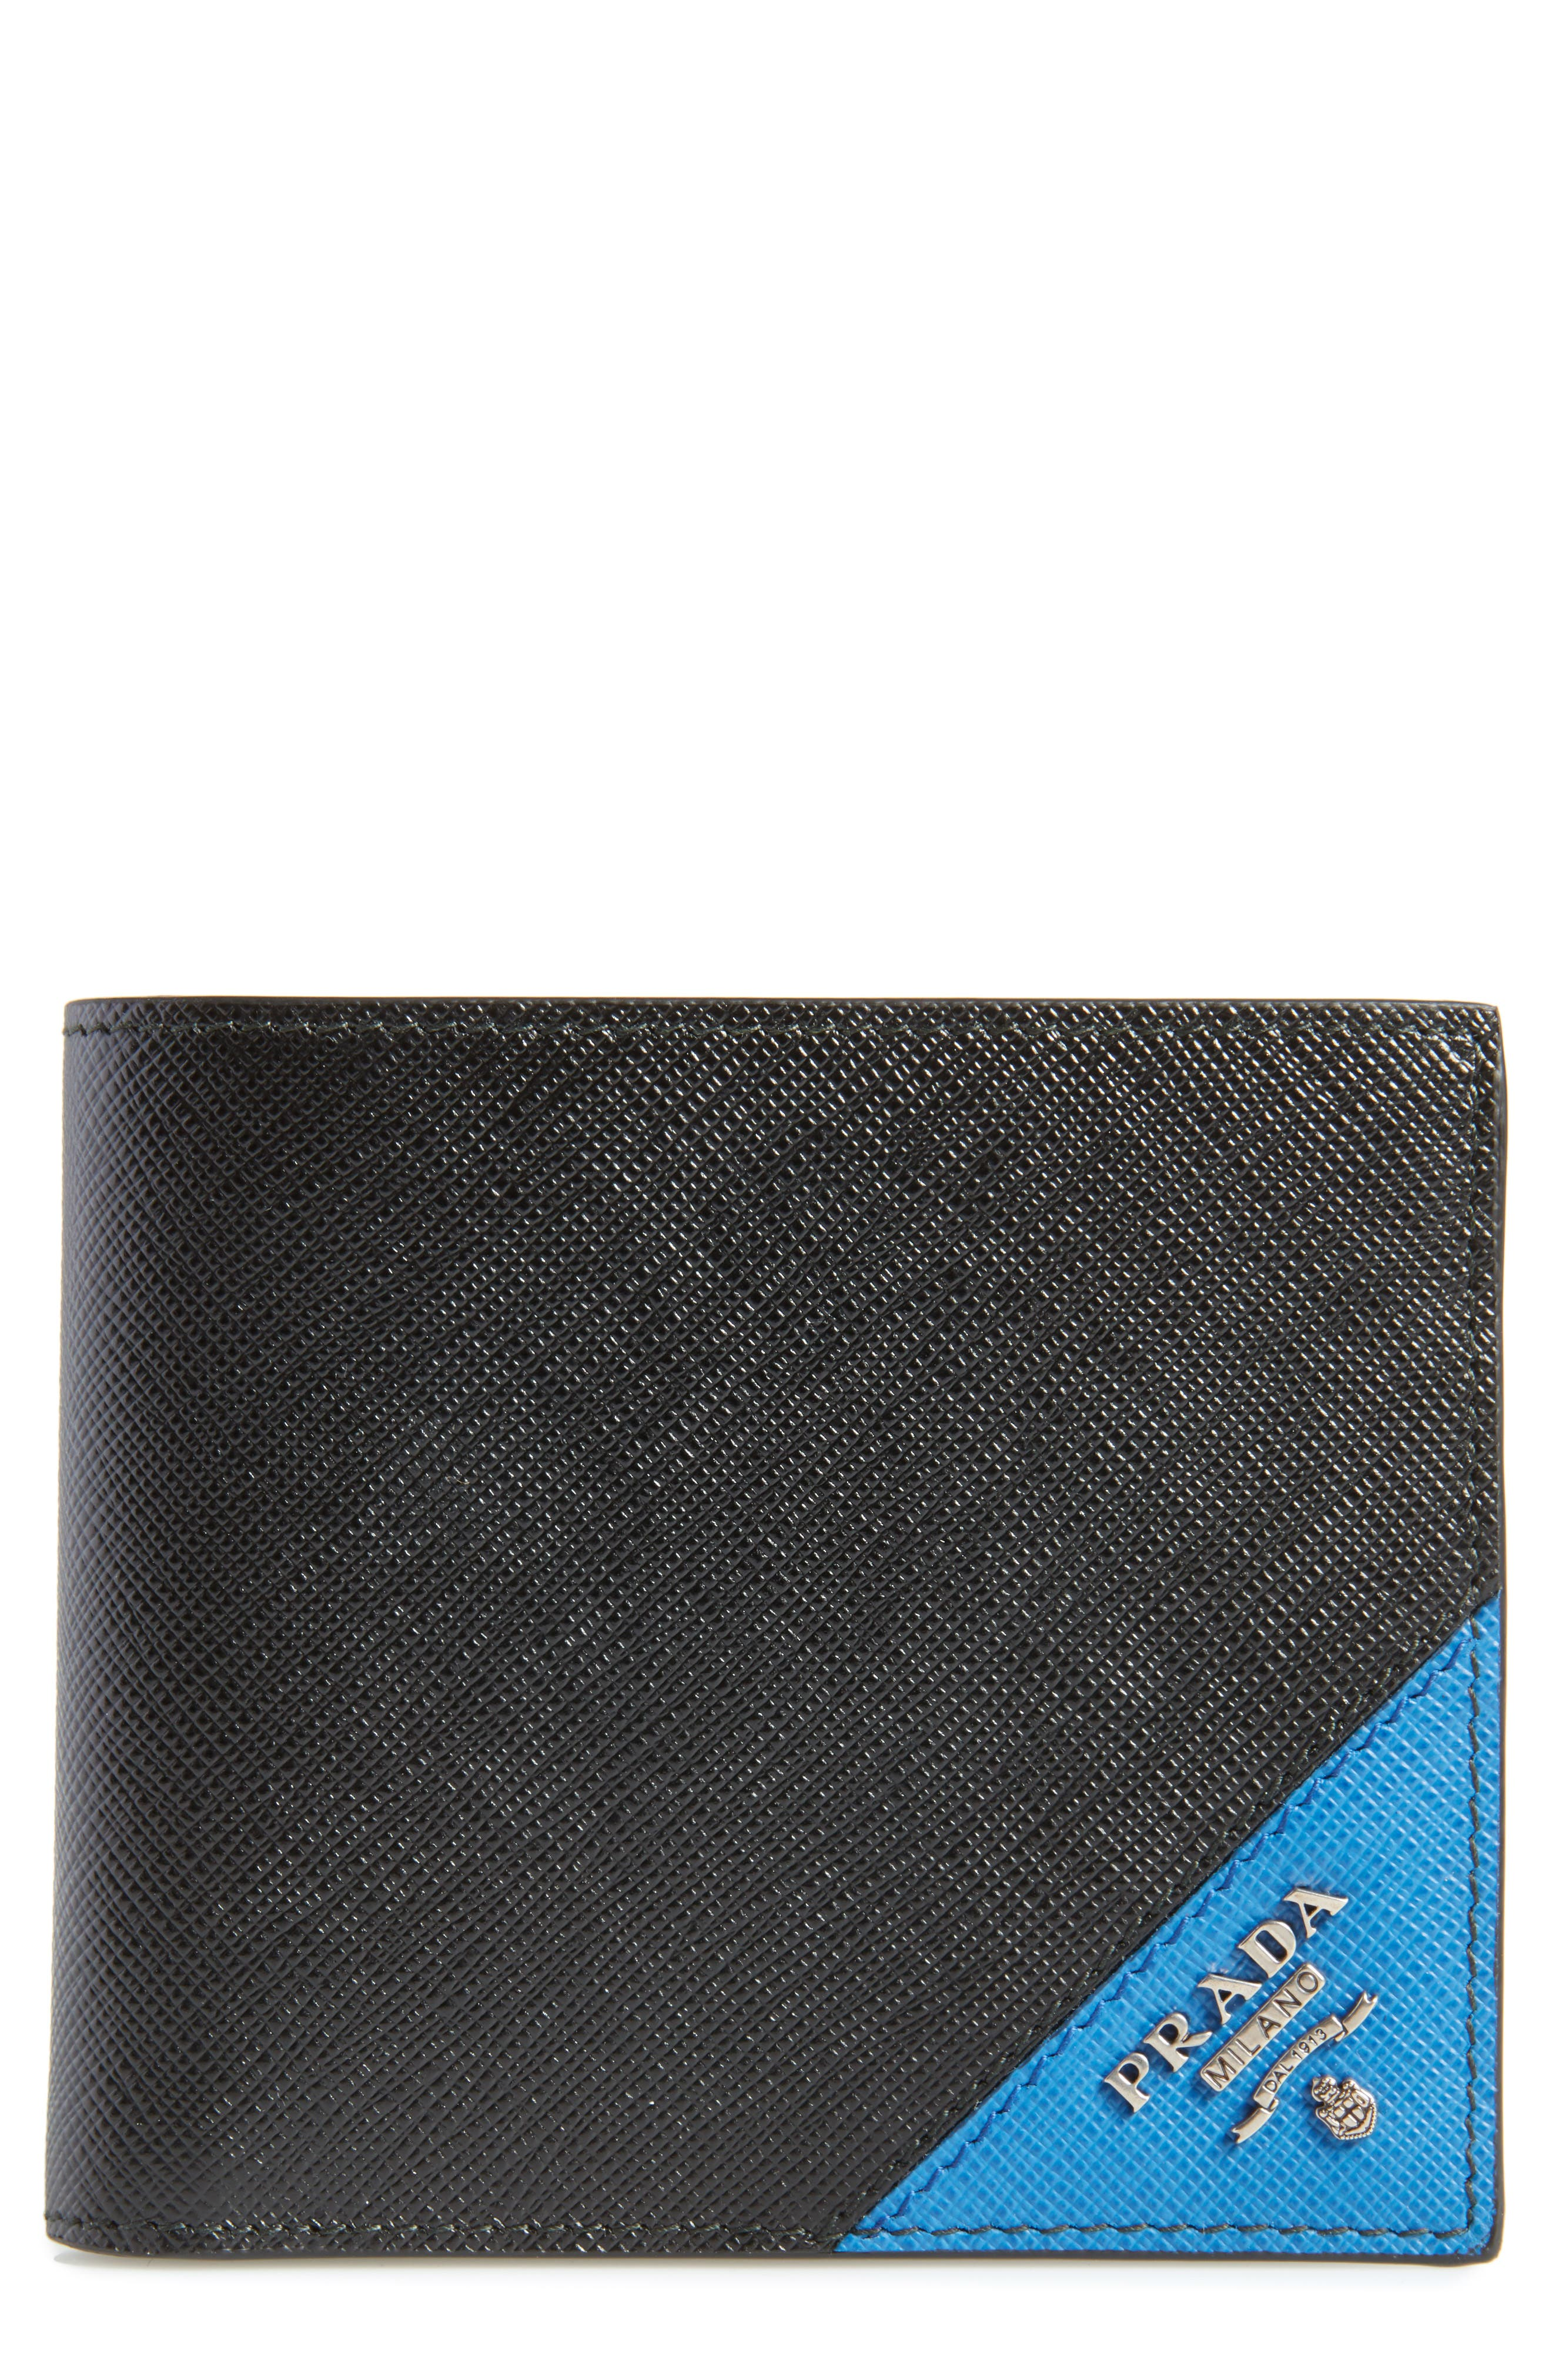 Saffiano Leather Billfold Wallet,                             Main thumbnail 1, color,                             002